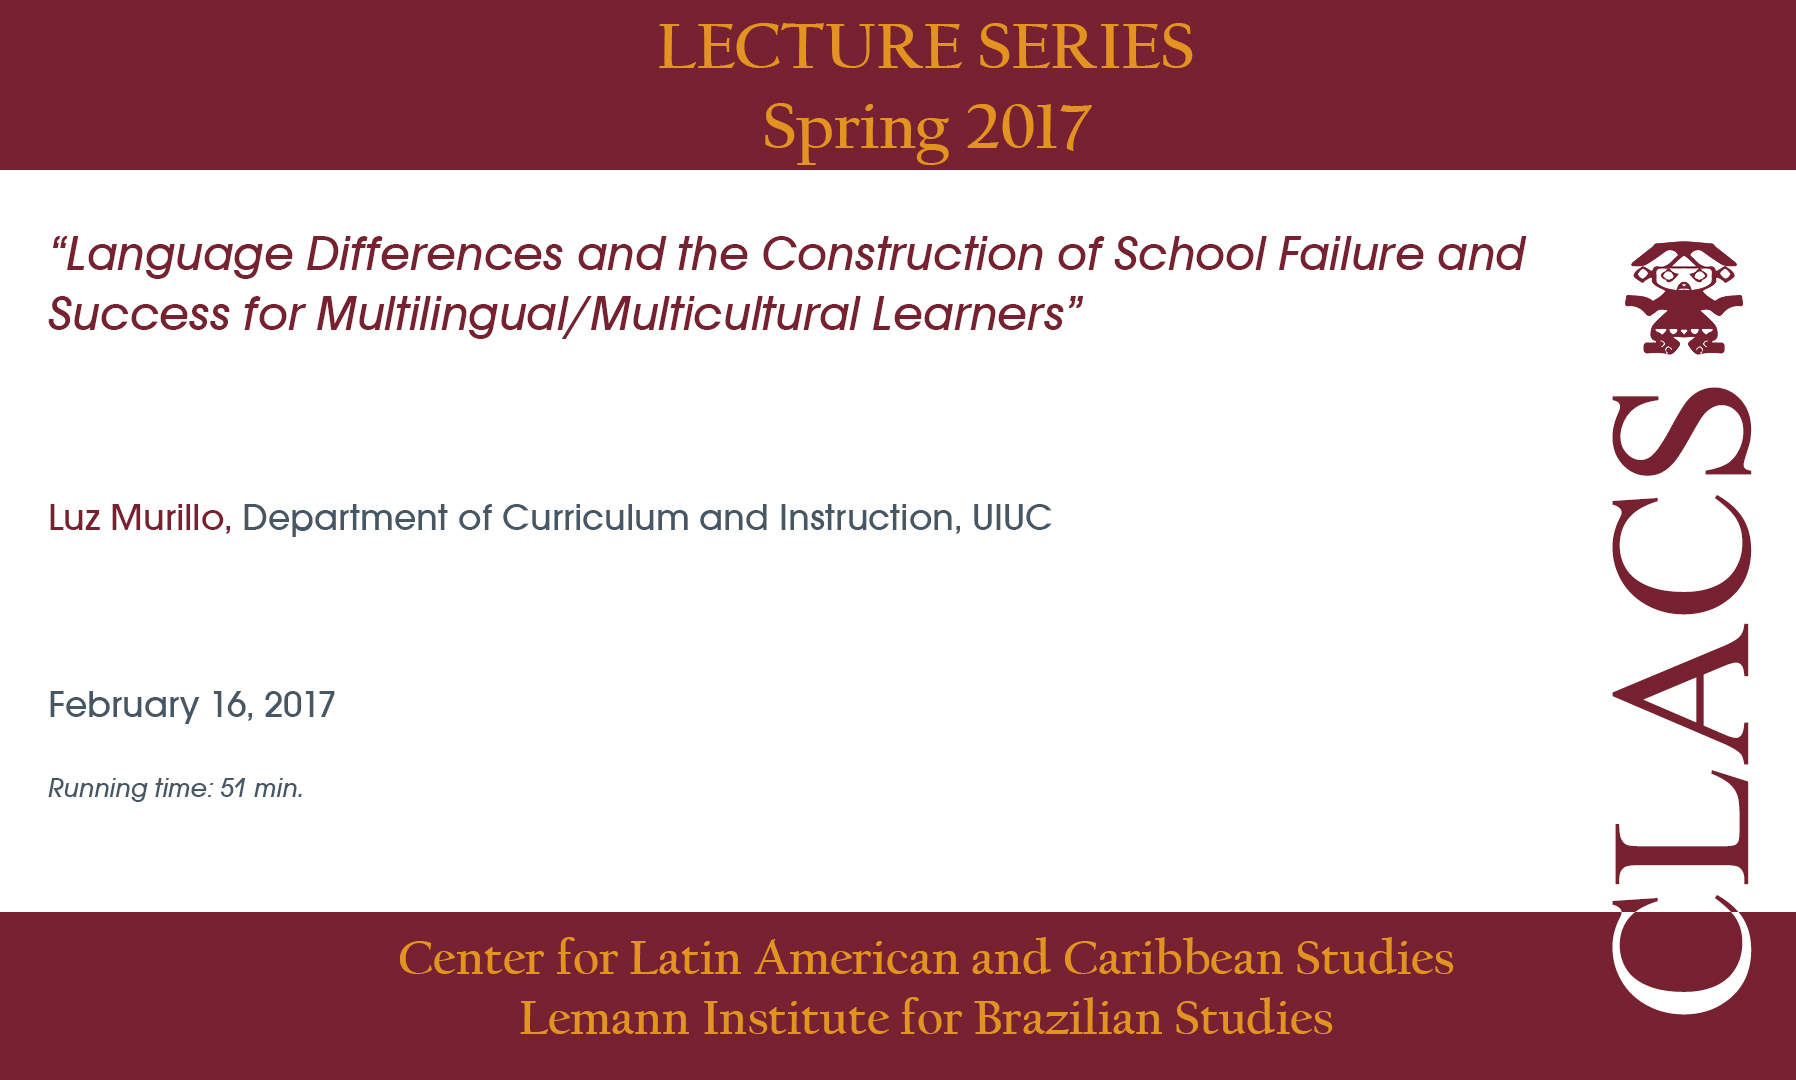 Language Differences and the Construction of School Failure and Success for Multilingual/Multicultural Learners